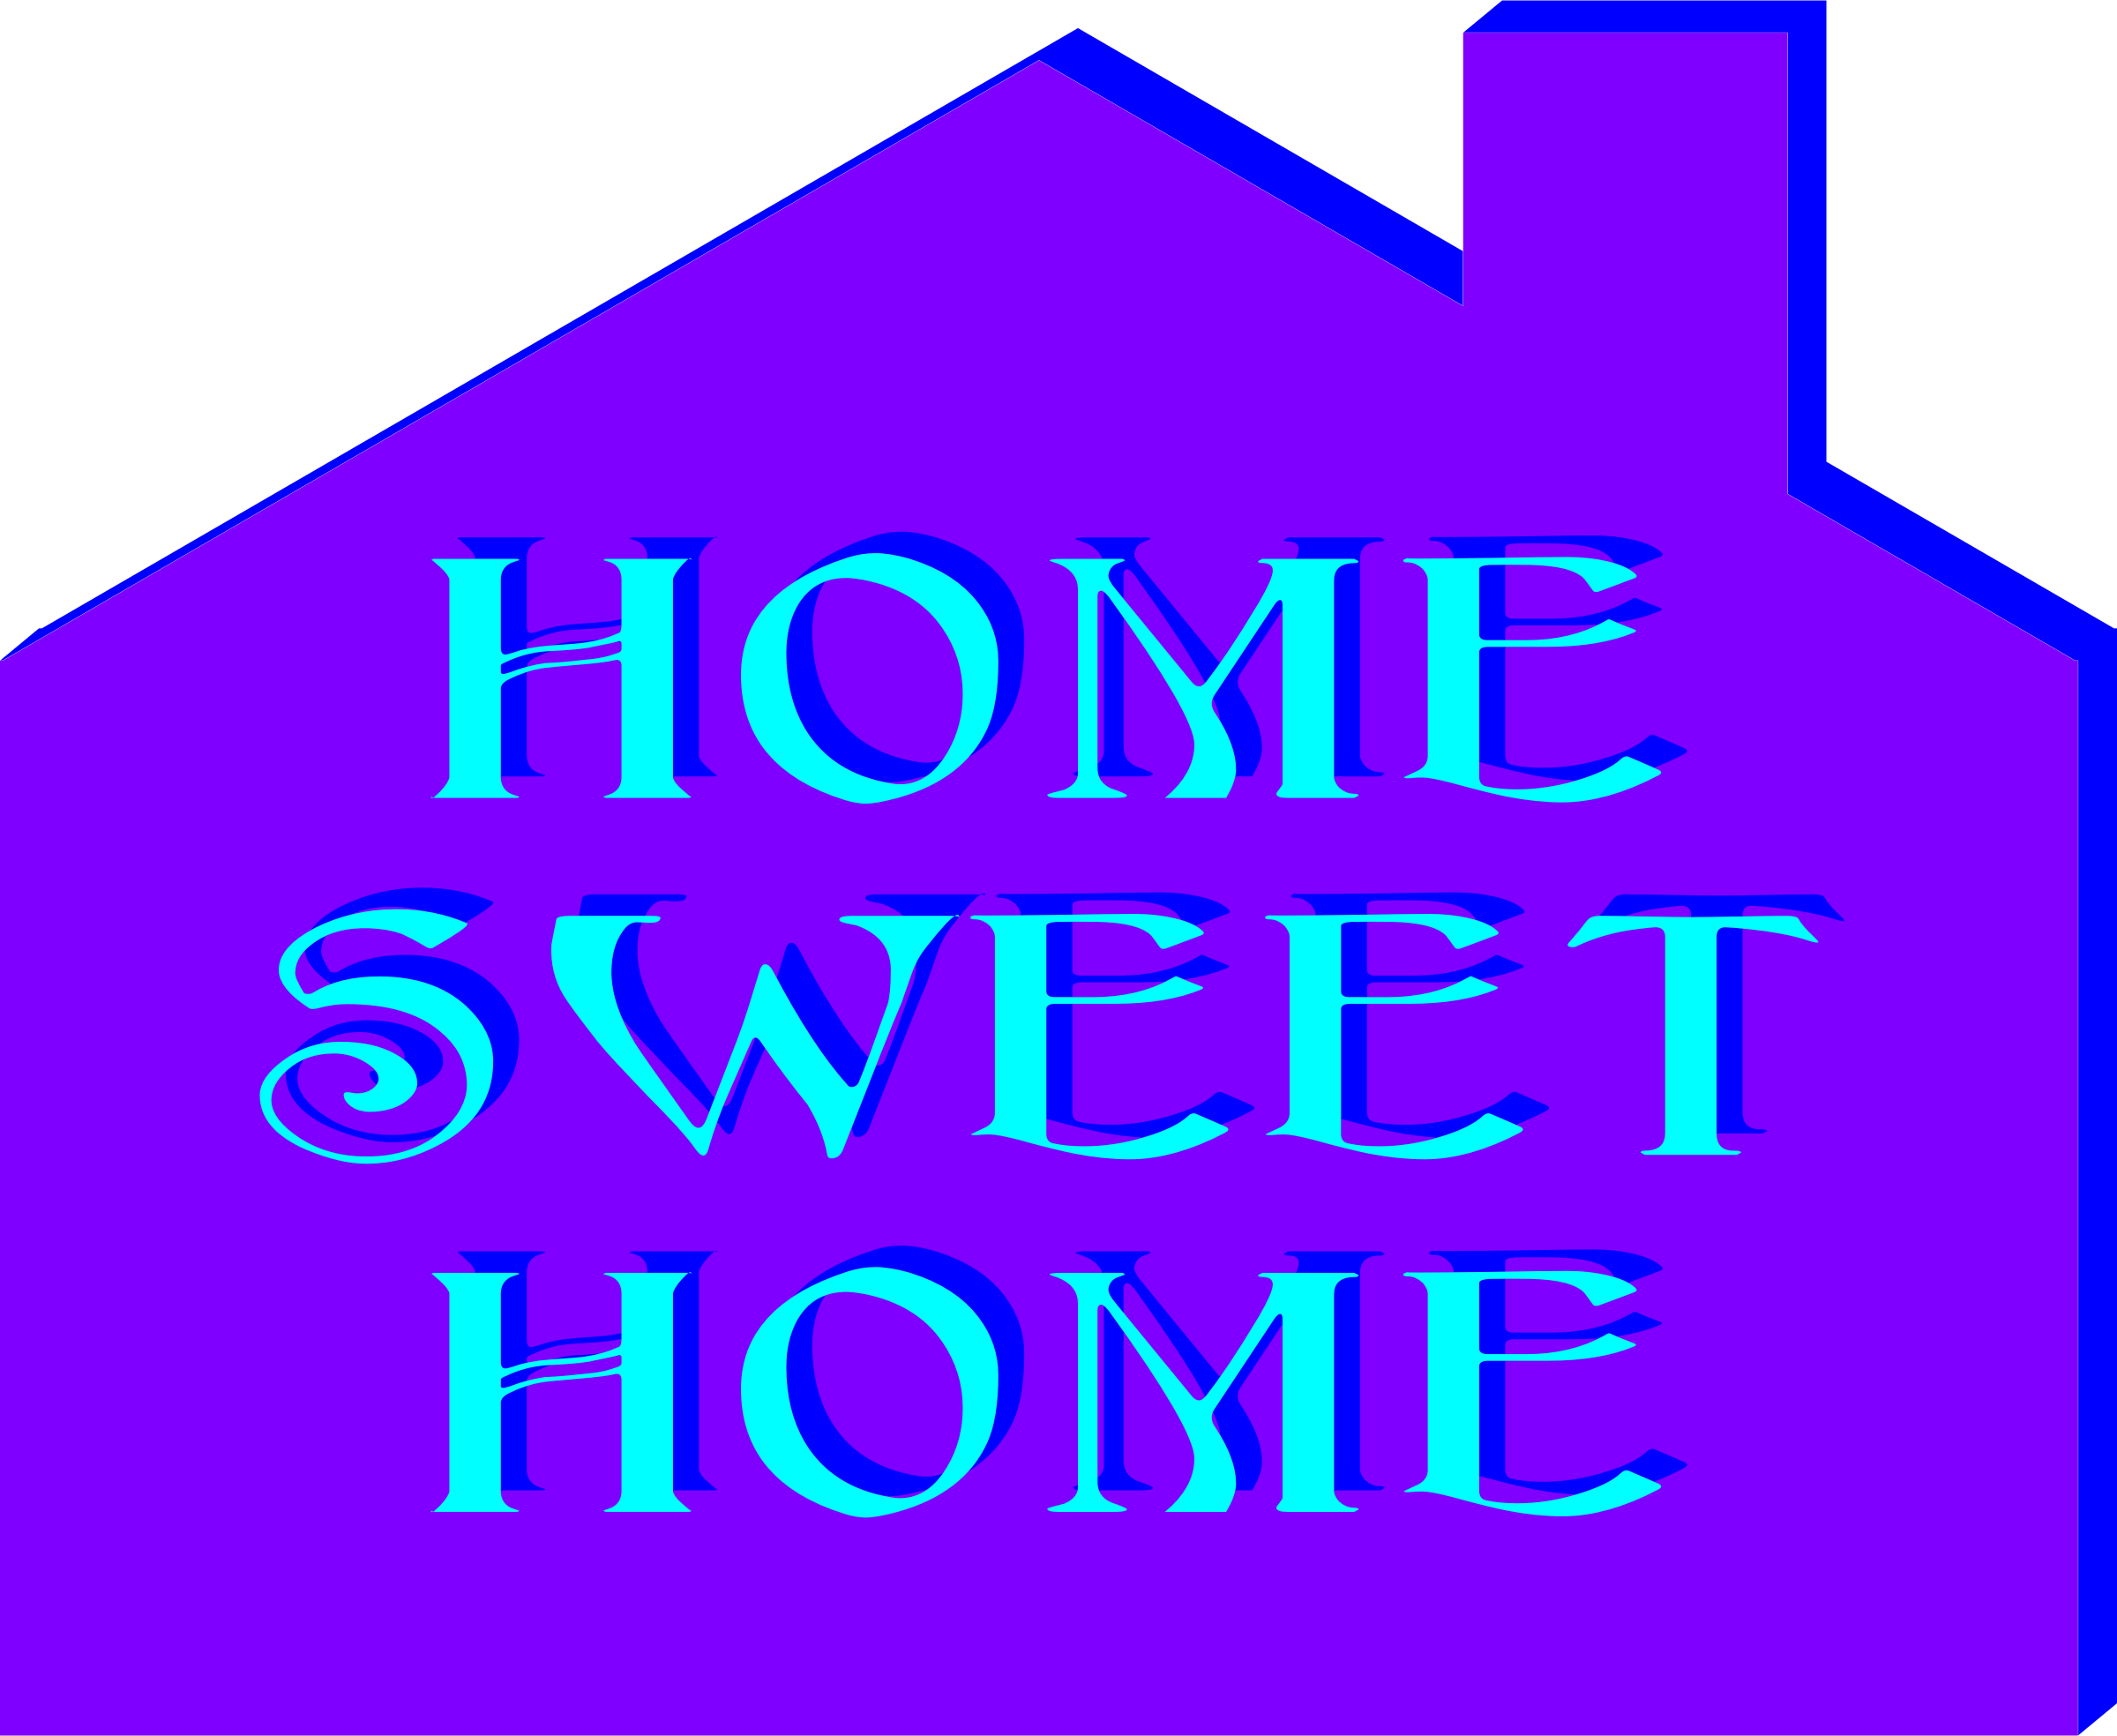 Home Seet Home by bobby520